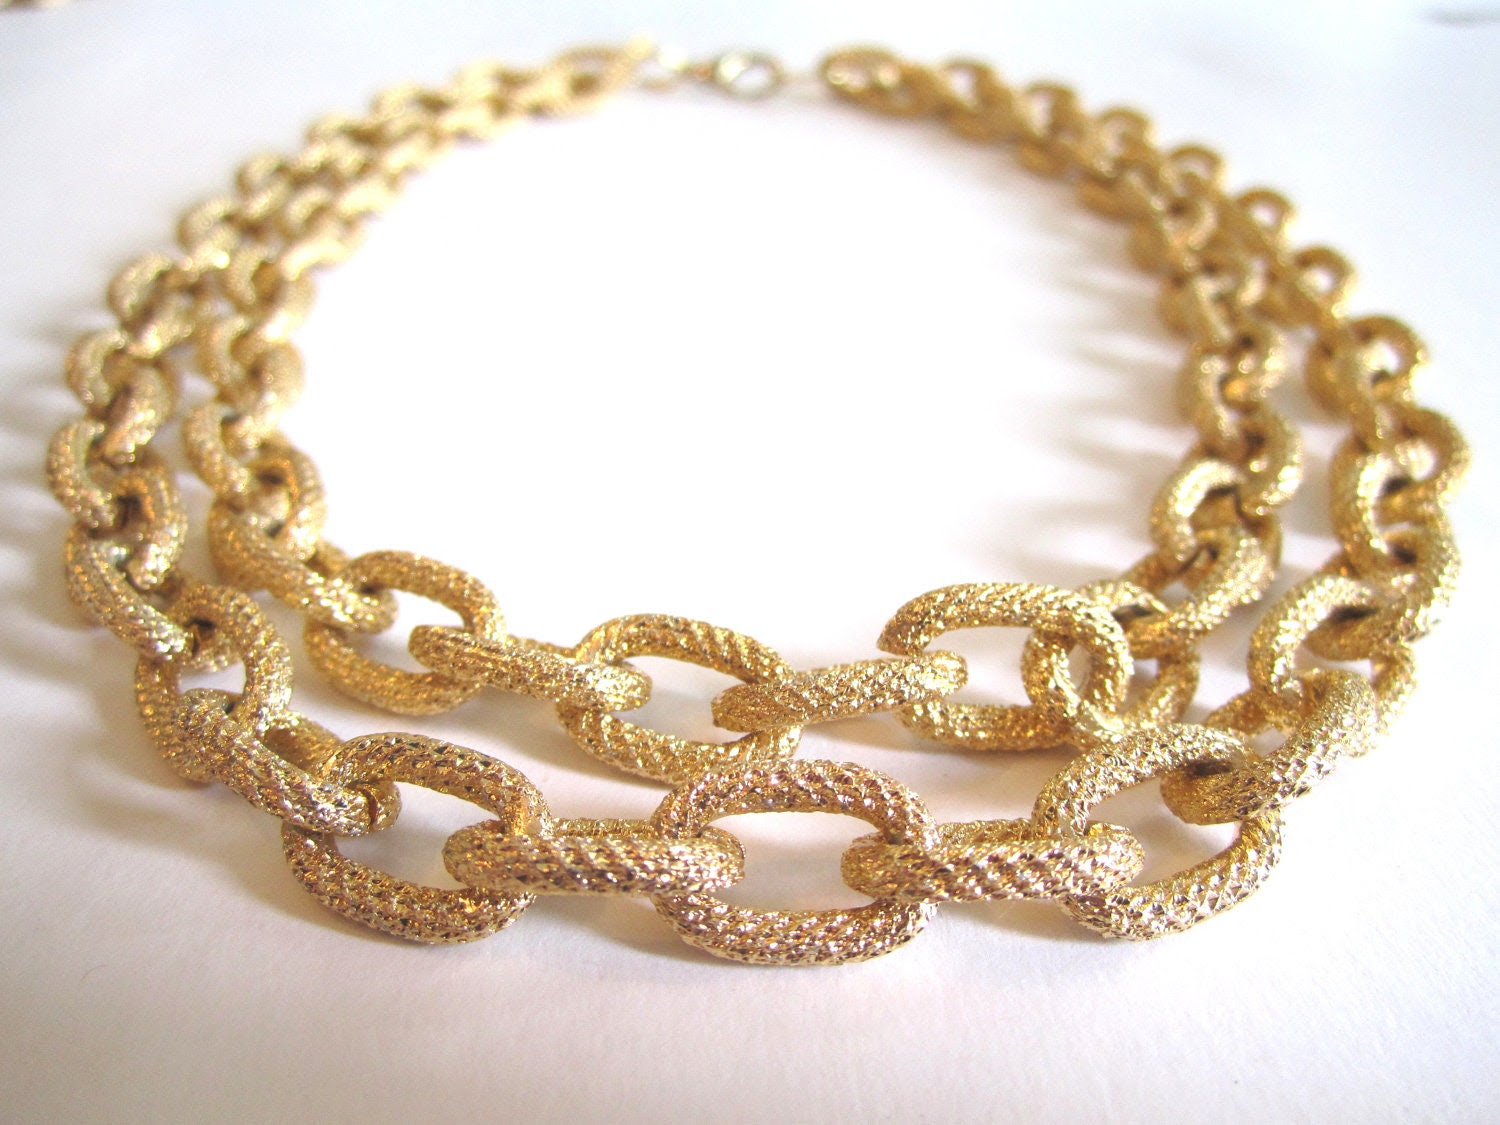 GOLD Faux PAVE Textured Double Chain Necklace